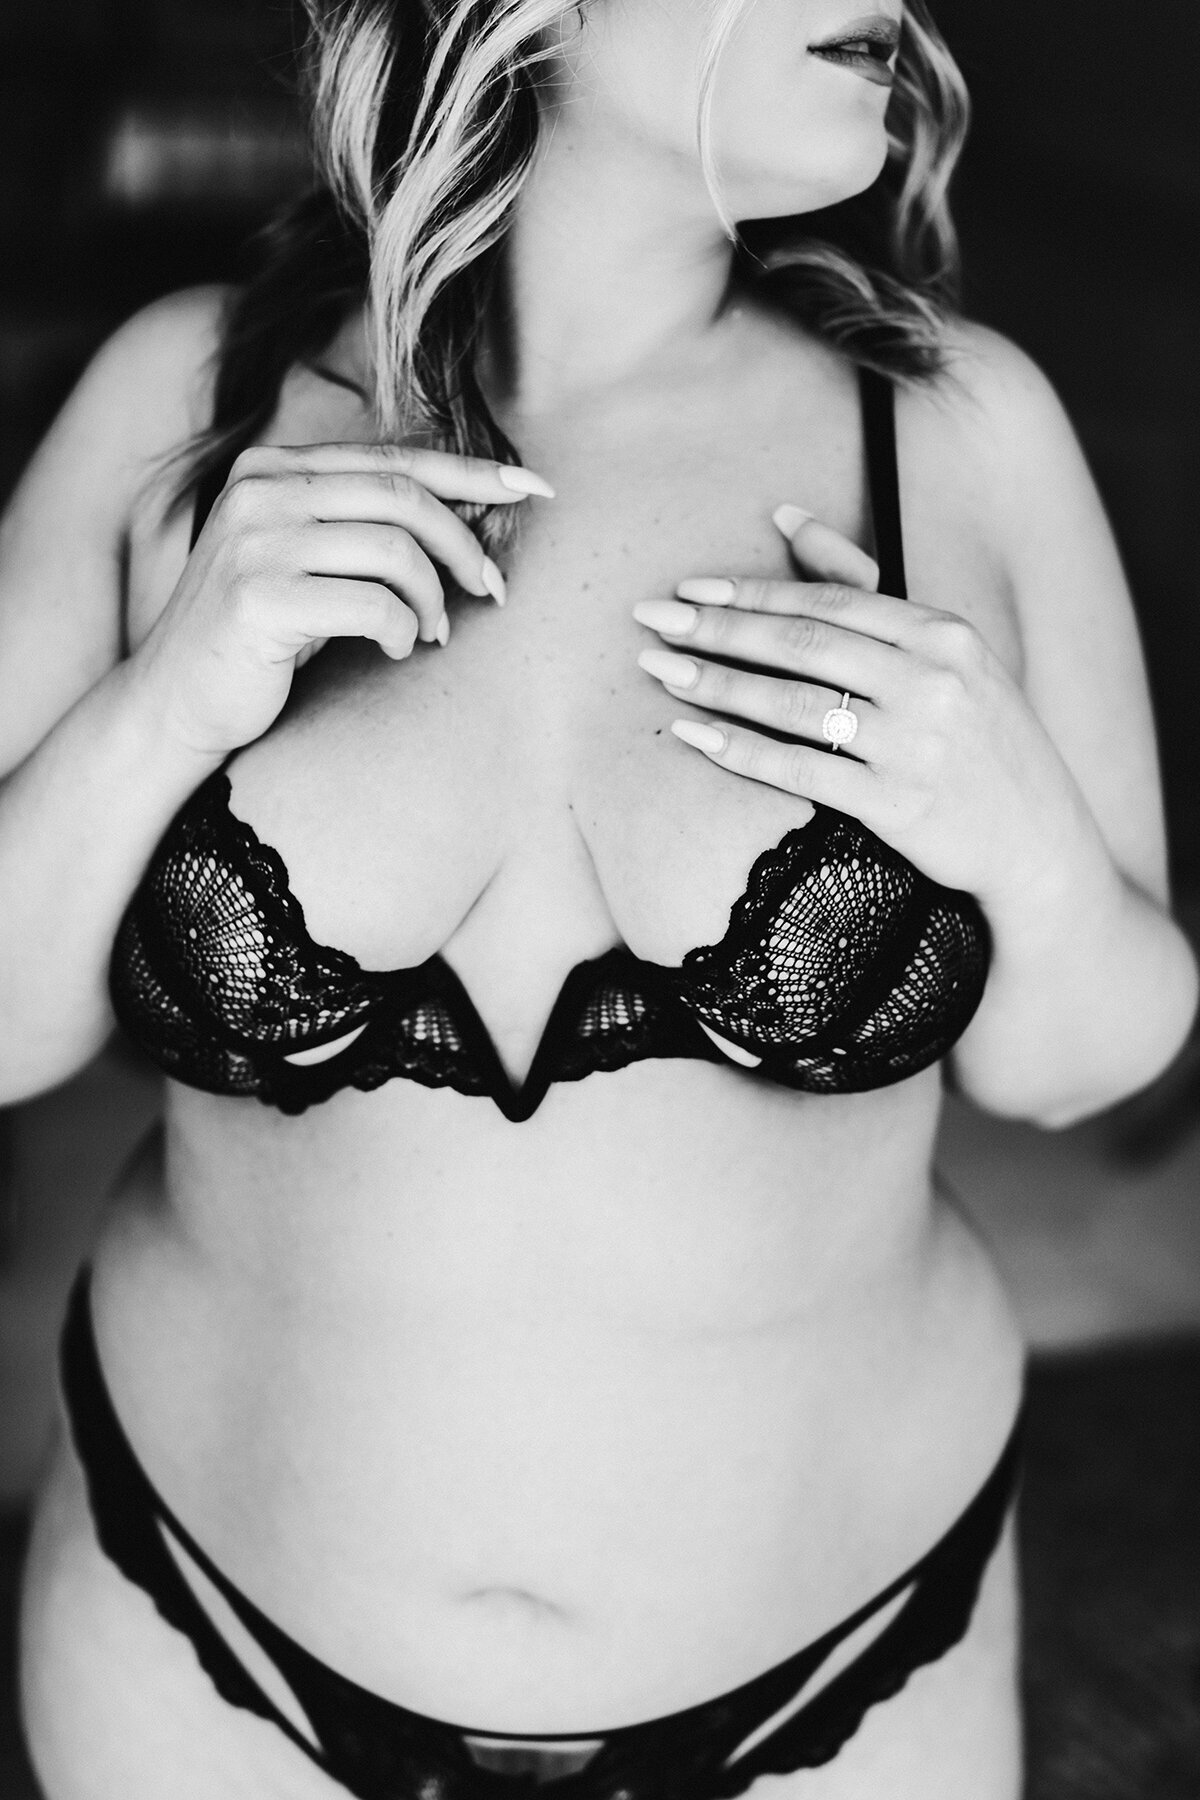 A moody black and white boudoir photo